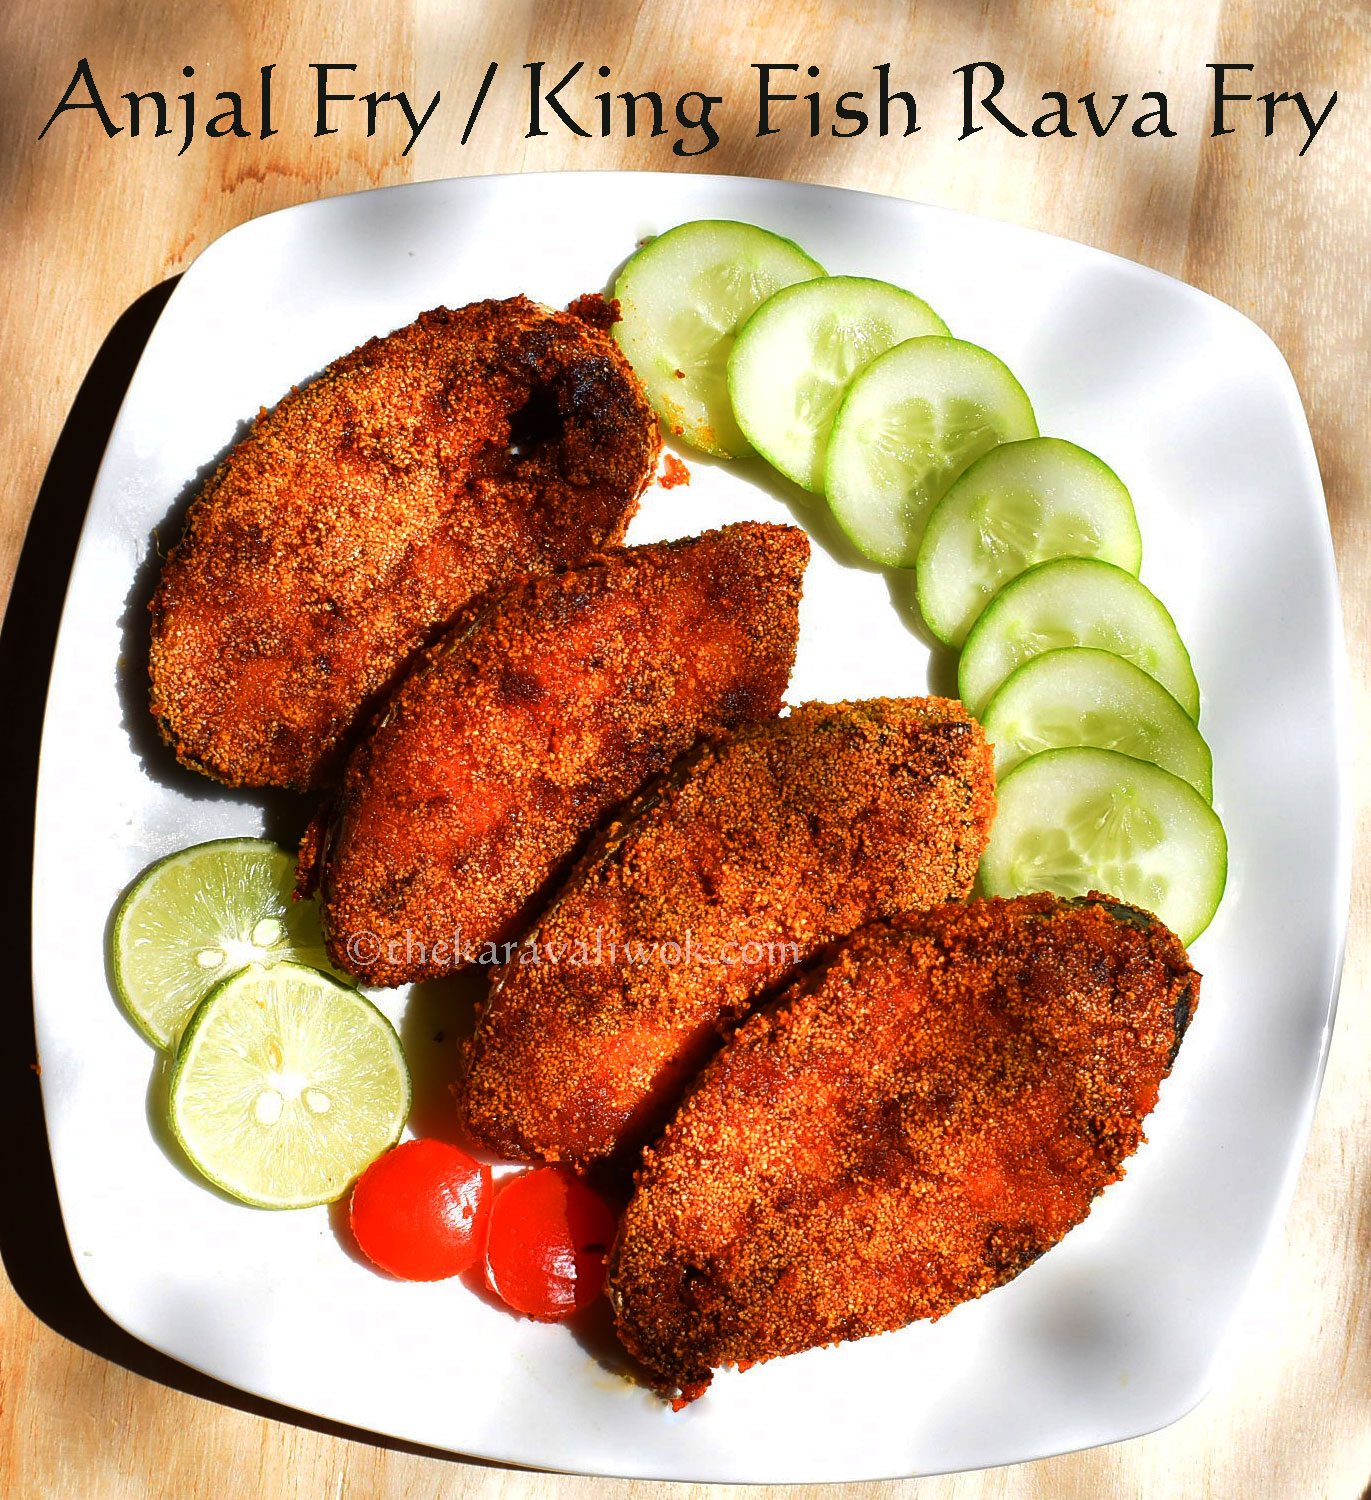 Anjal fry king fish rava fry mangalorean style the for Fish fry ingredients